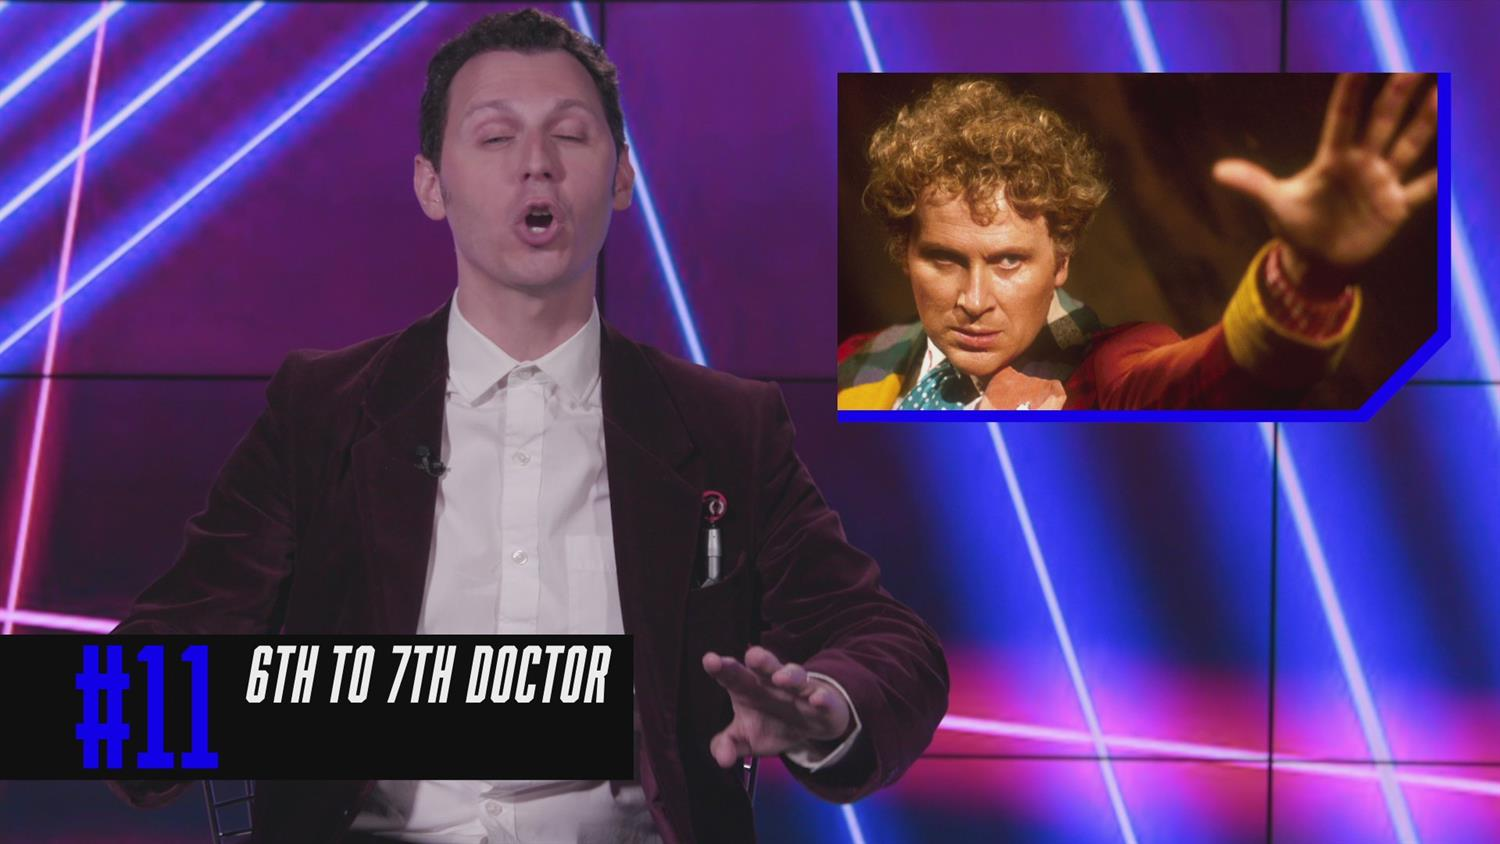 Doctor Who: Ranking The Regenerations